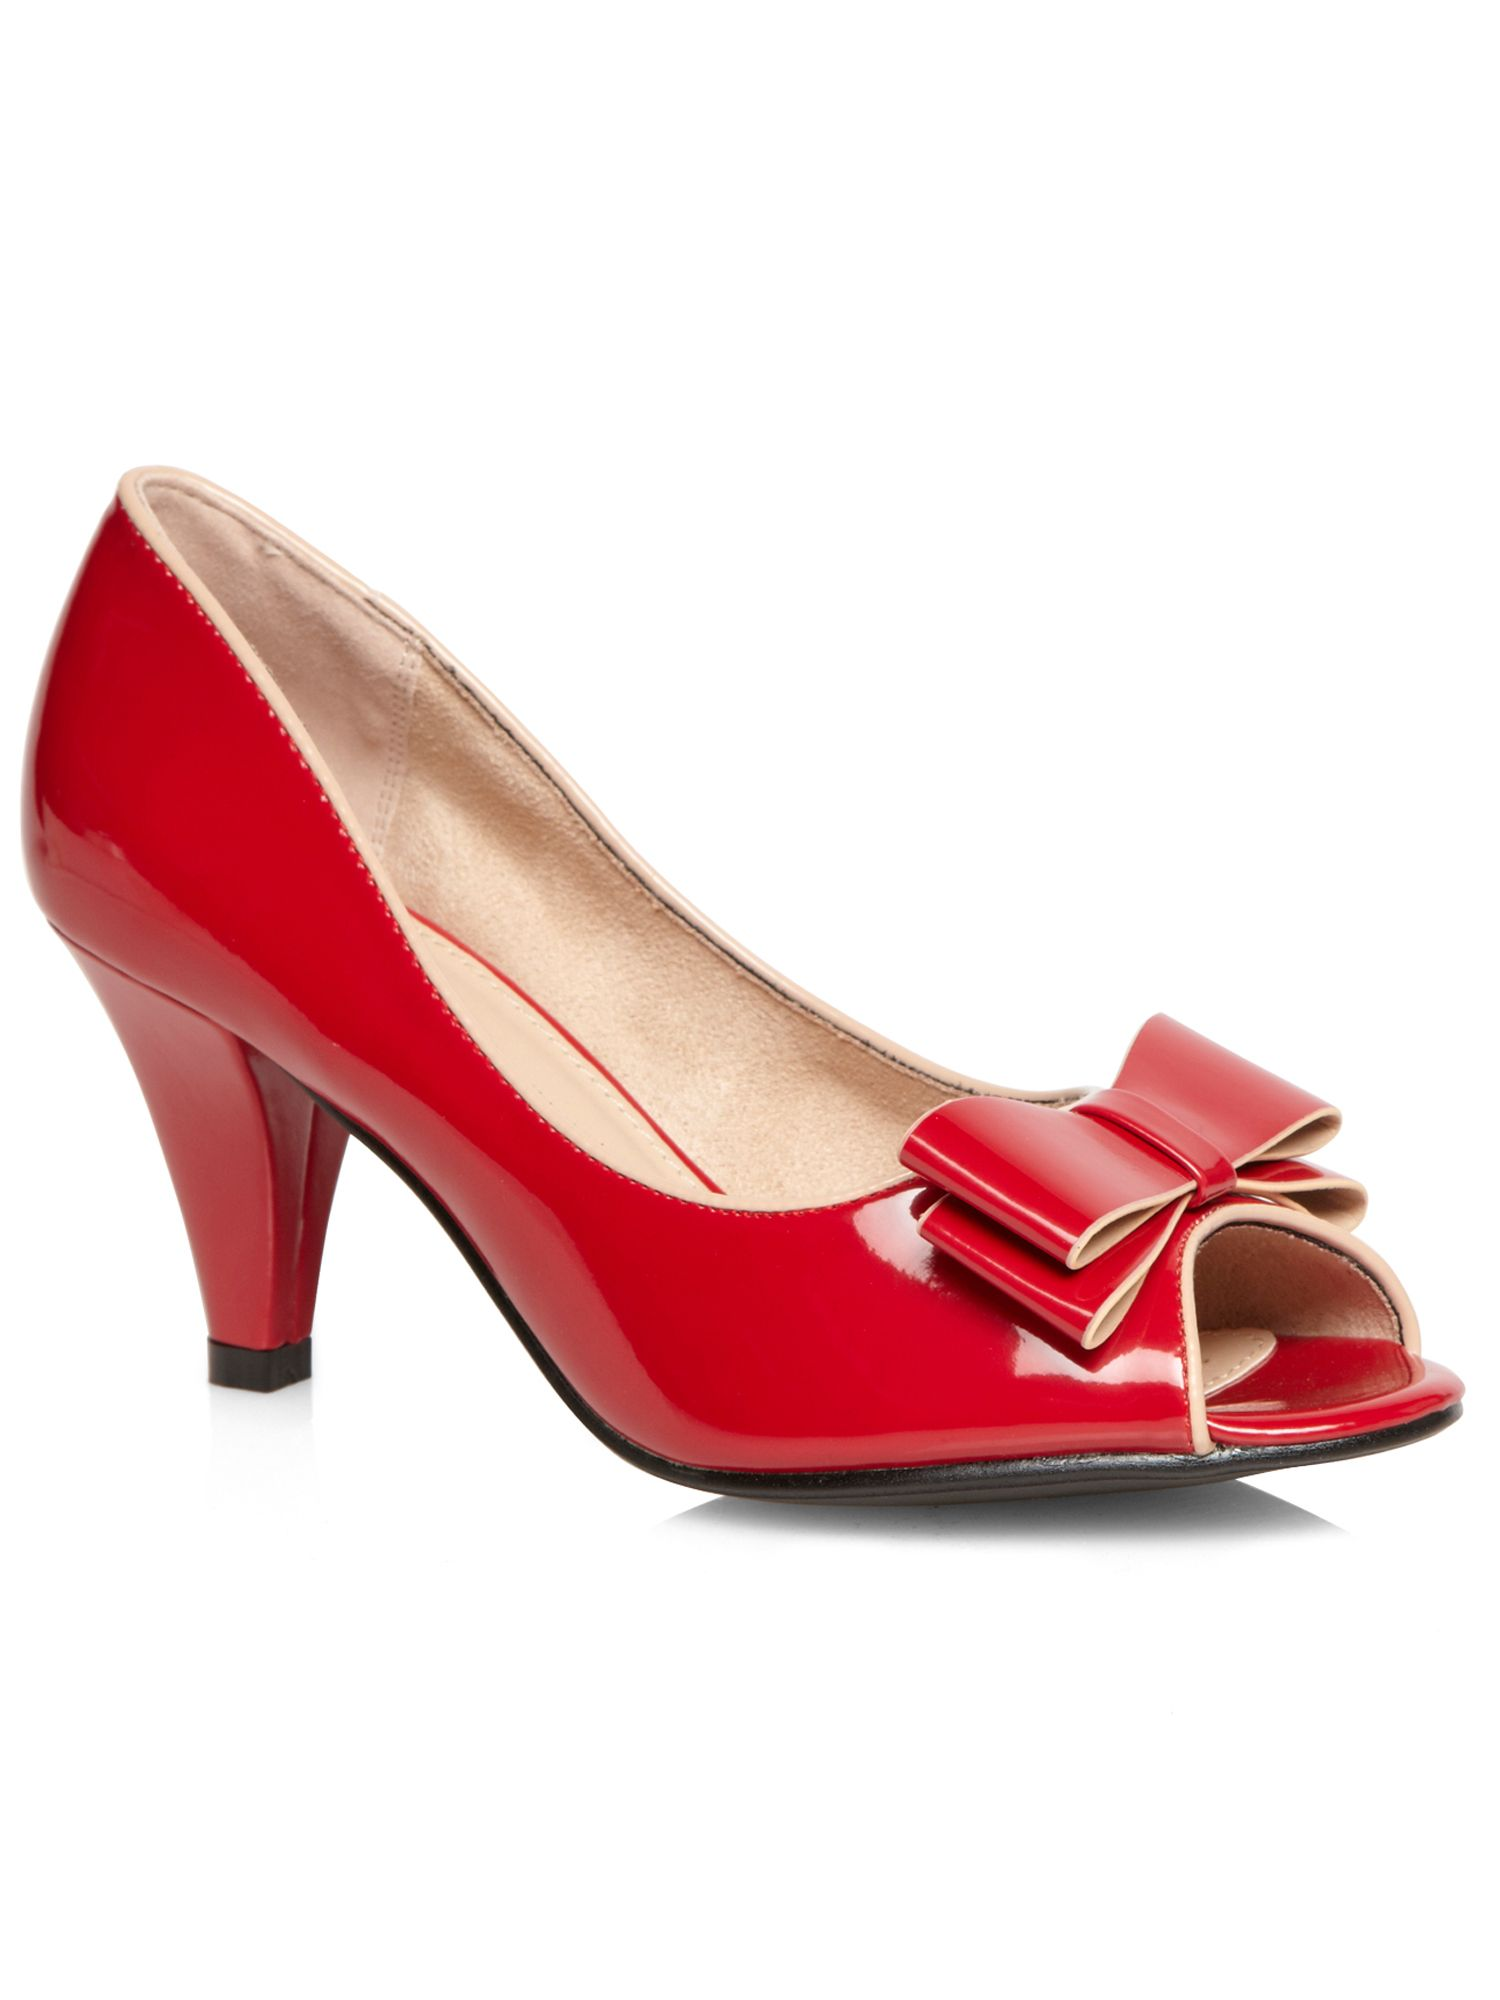 Red patent bow peep toe court shoe